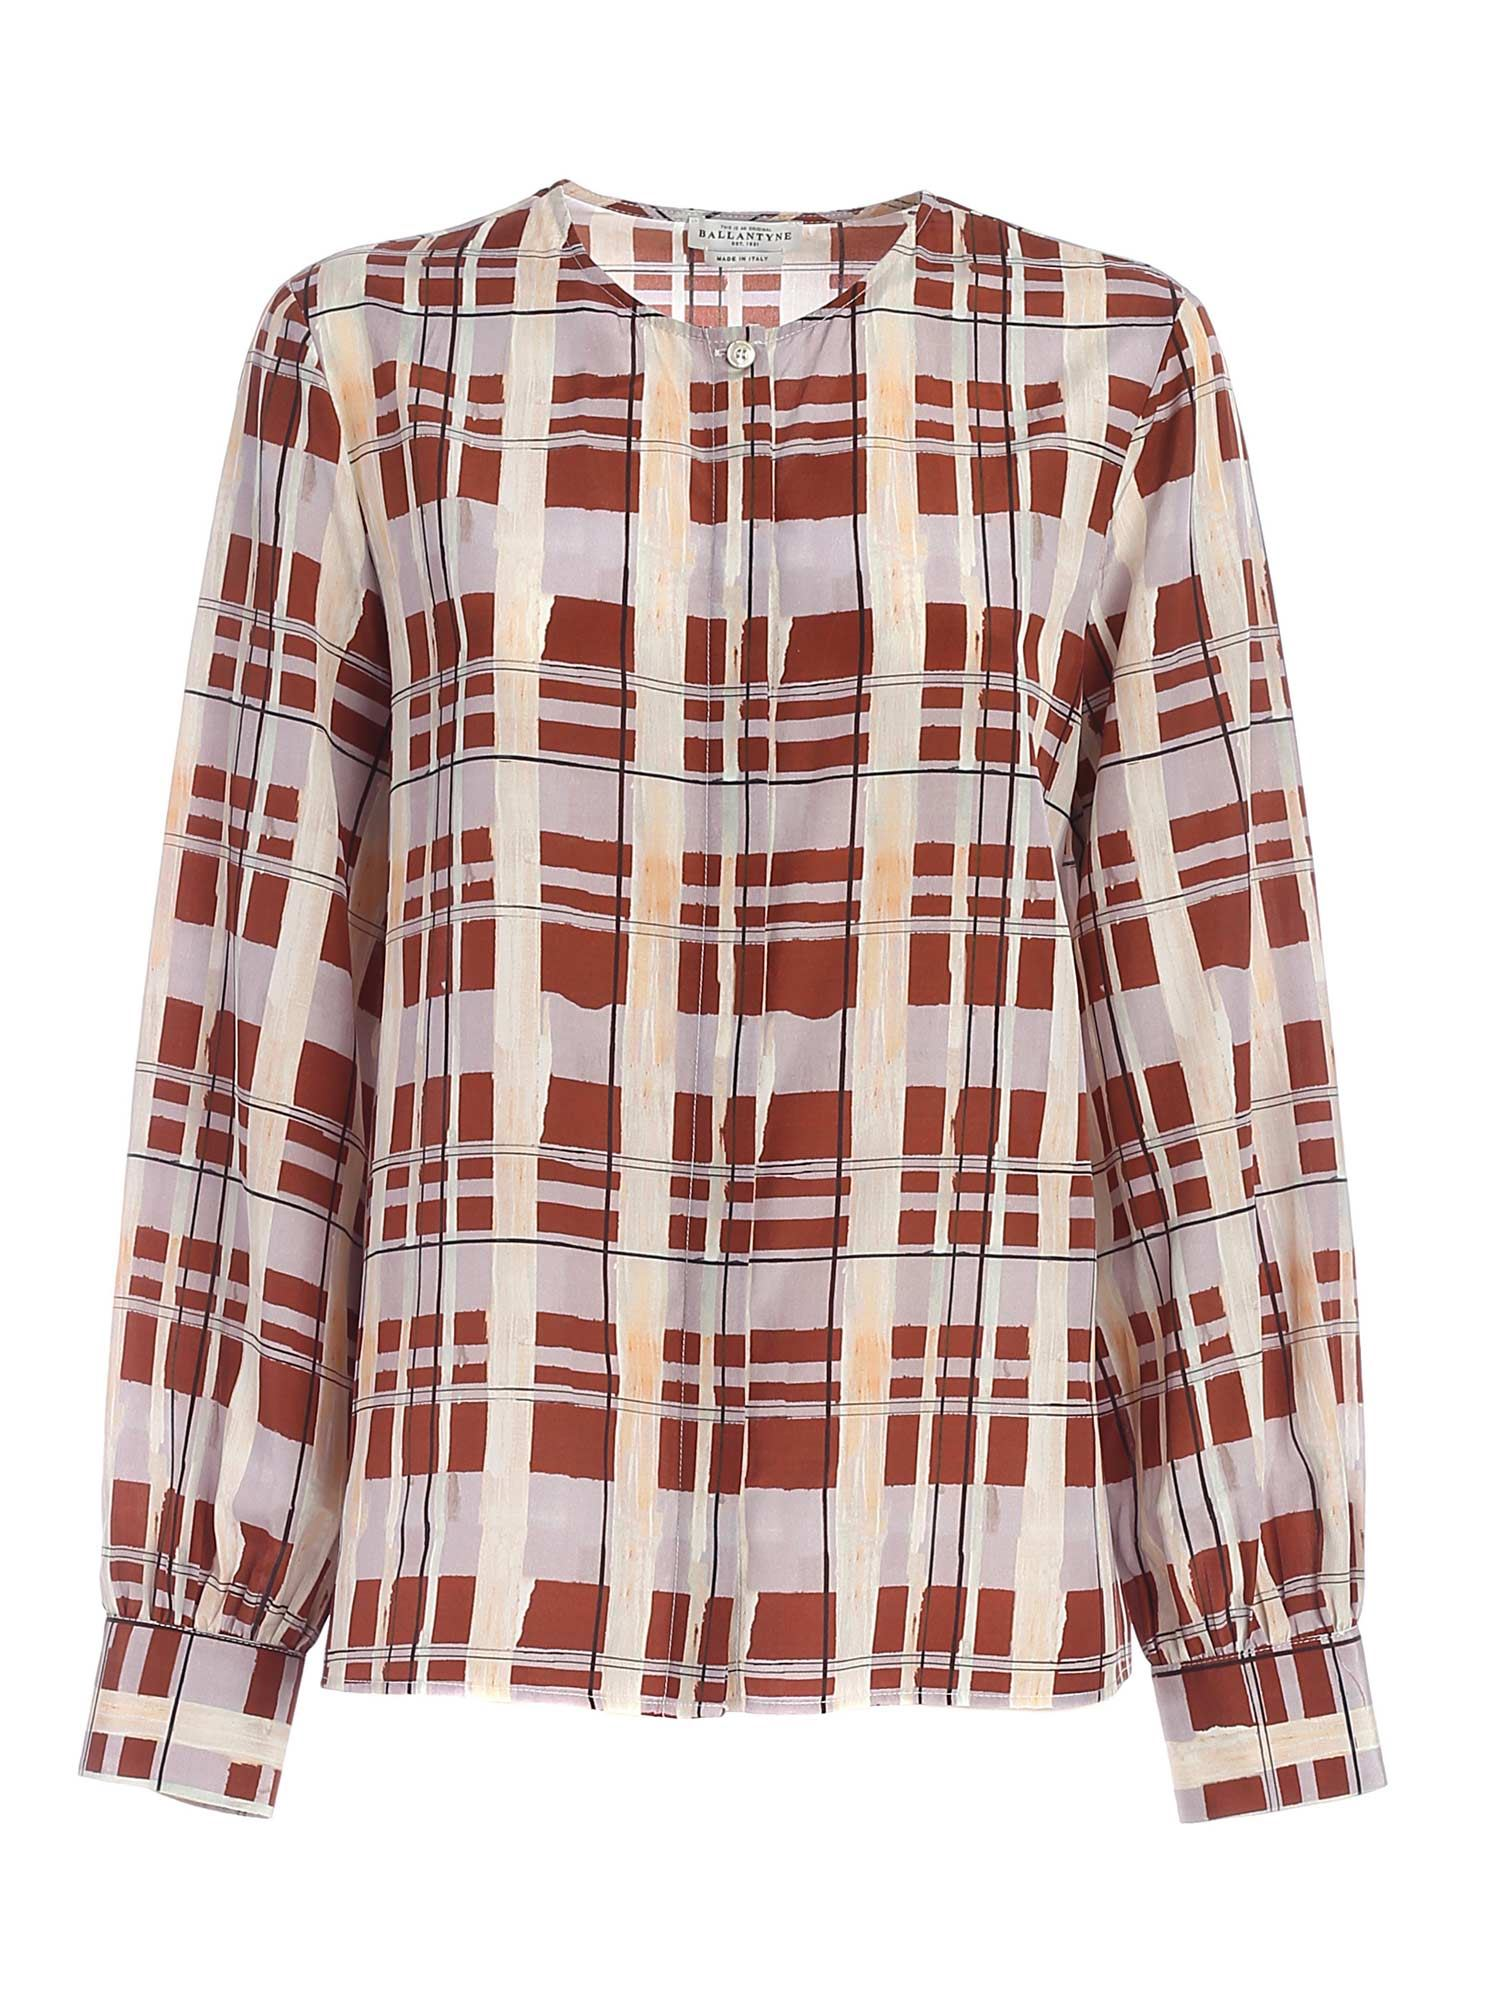 Ballantyne CHECKED PRINT MULTICOLOR SHIRT